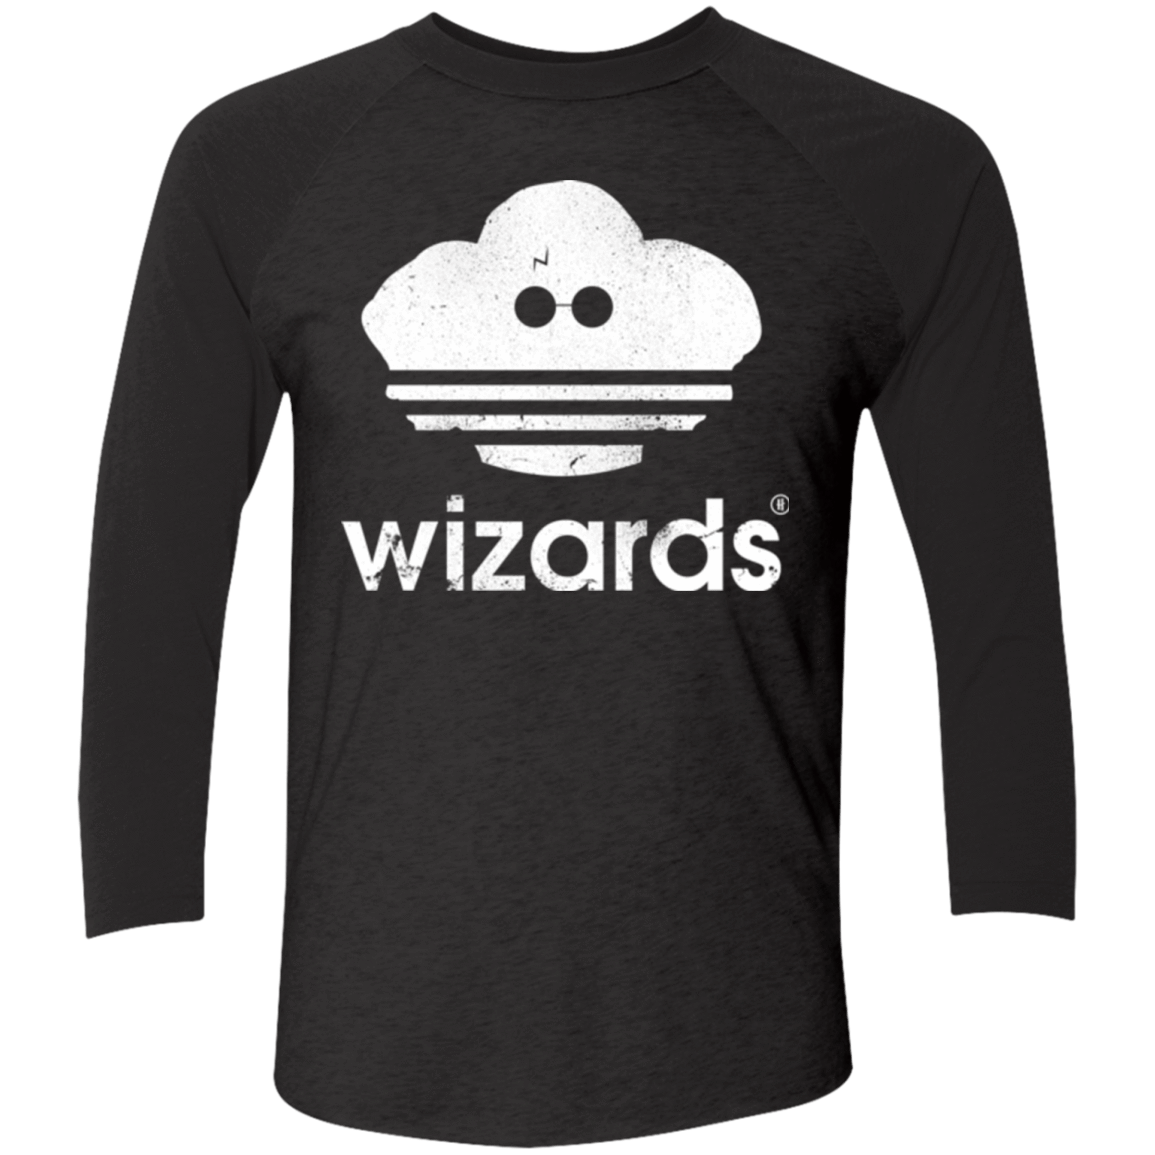 T-Shirts Vintage Black/Vintage Black / X-Small Wizards Men's Triblend 3/4 Sleeve